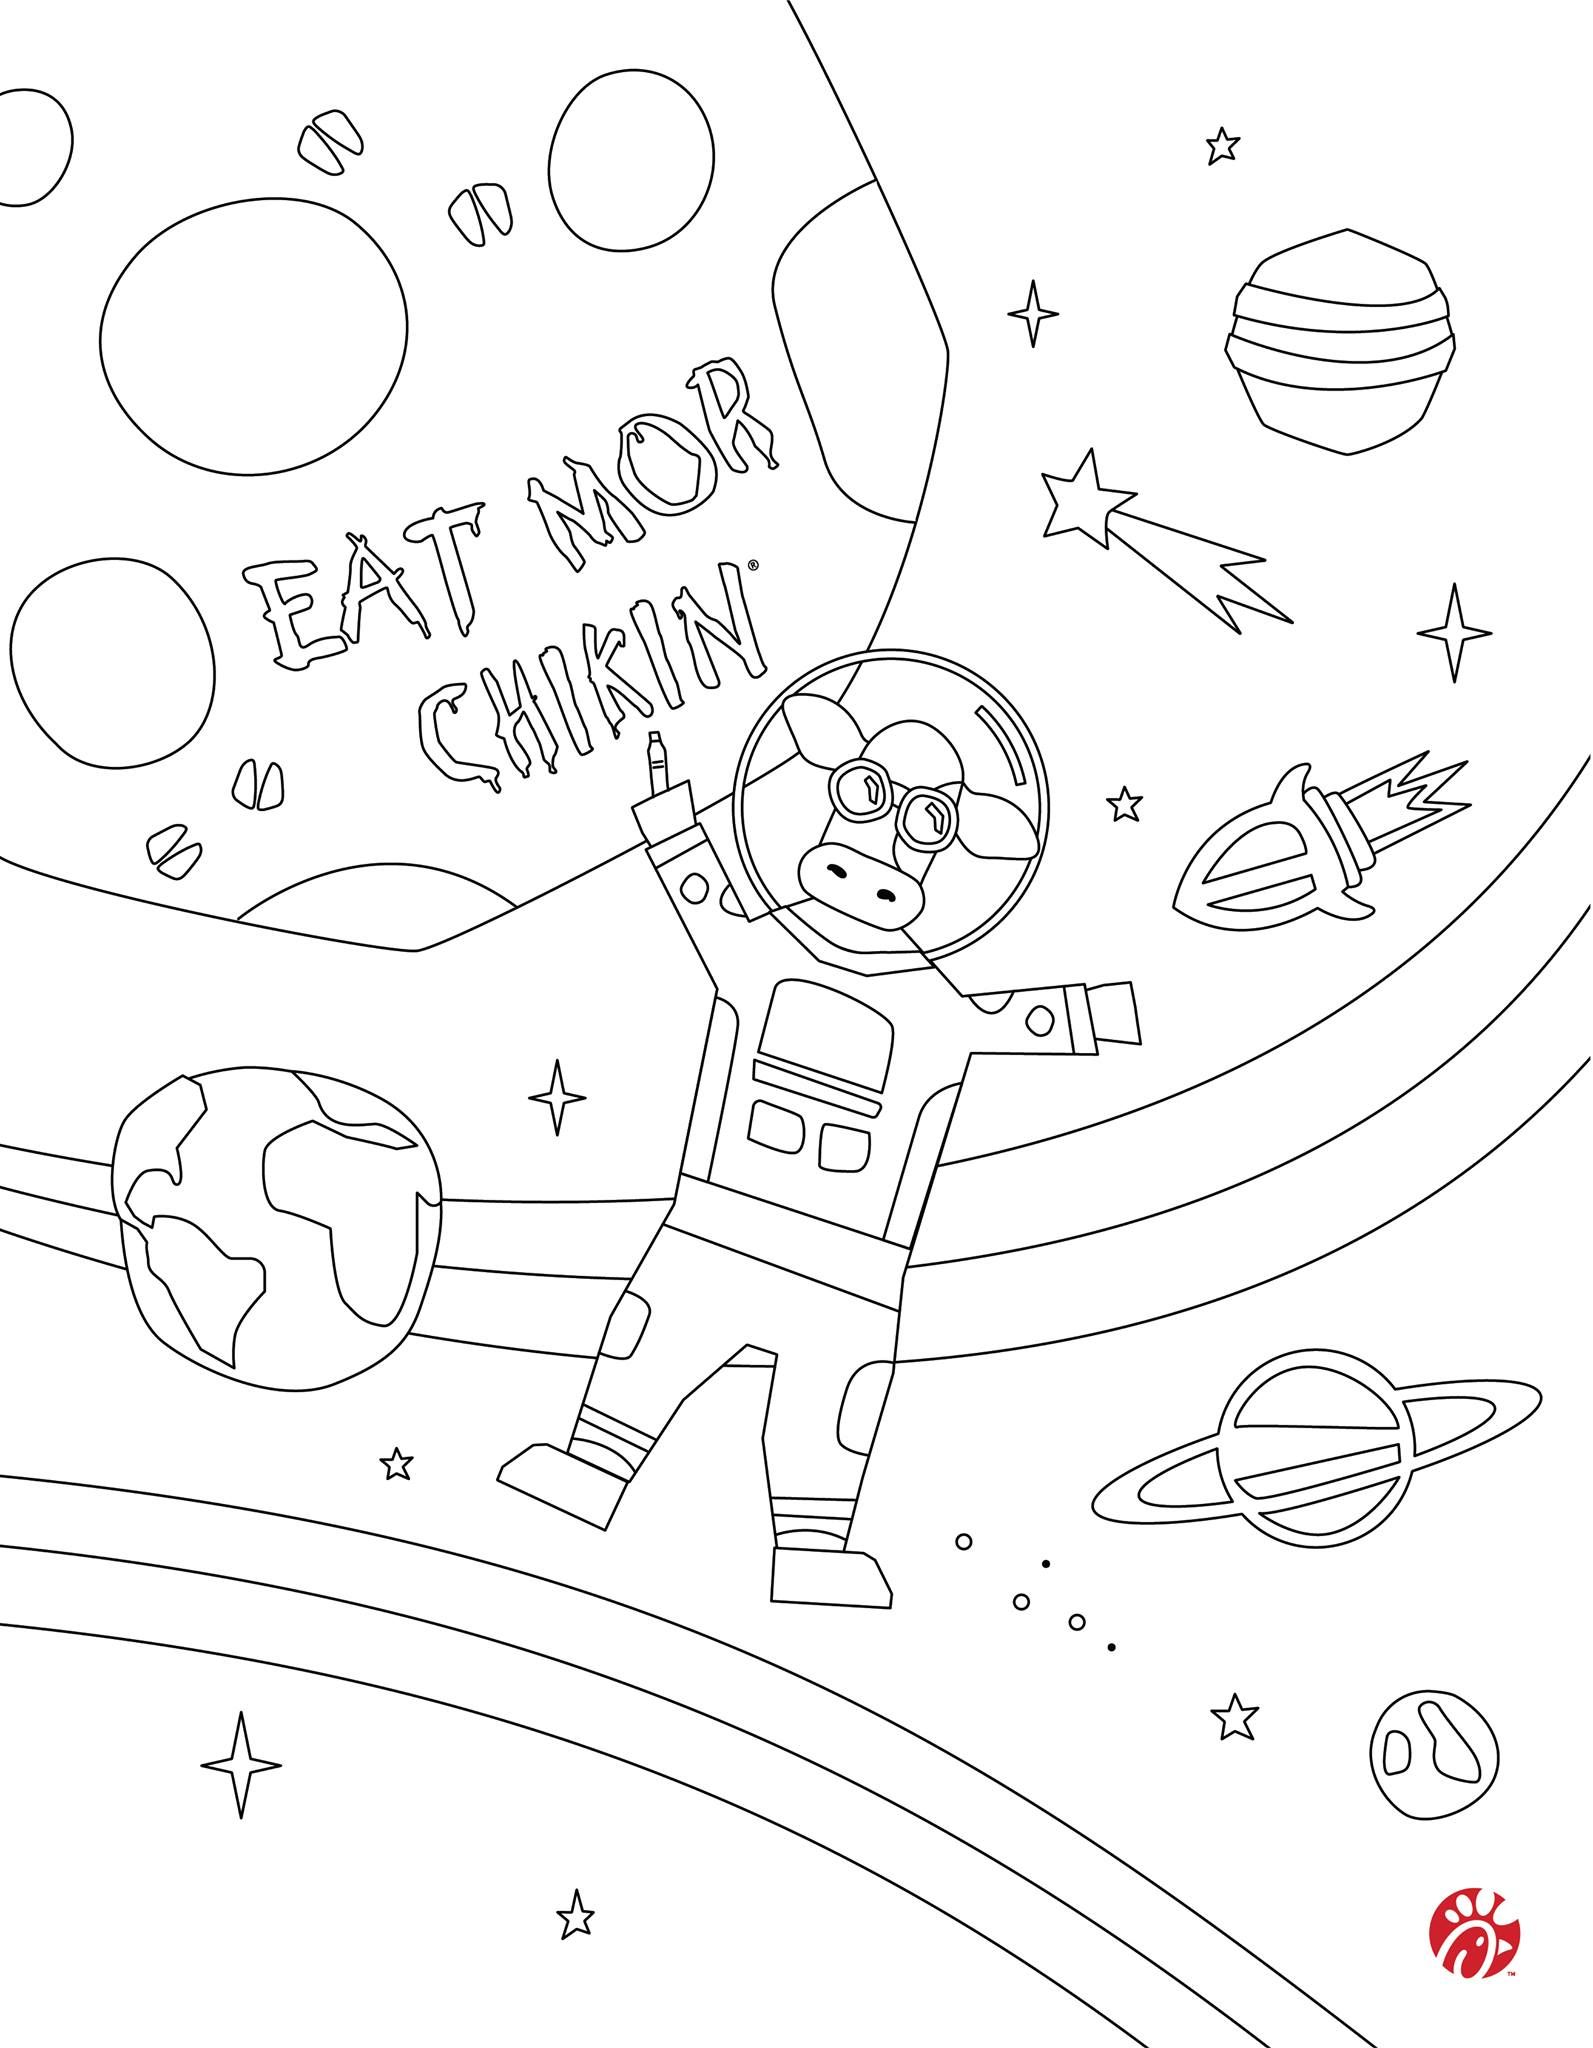 At-home activity for kids: Download and print coloring